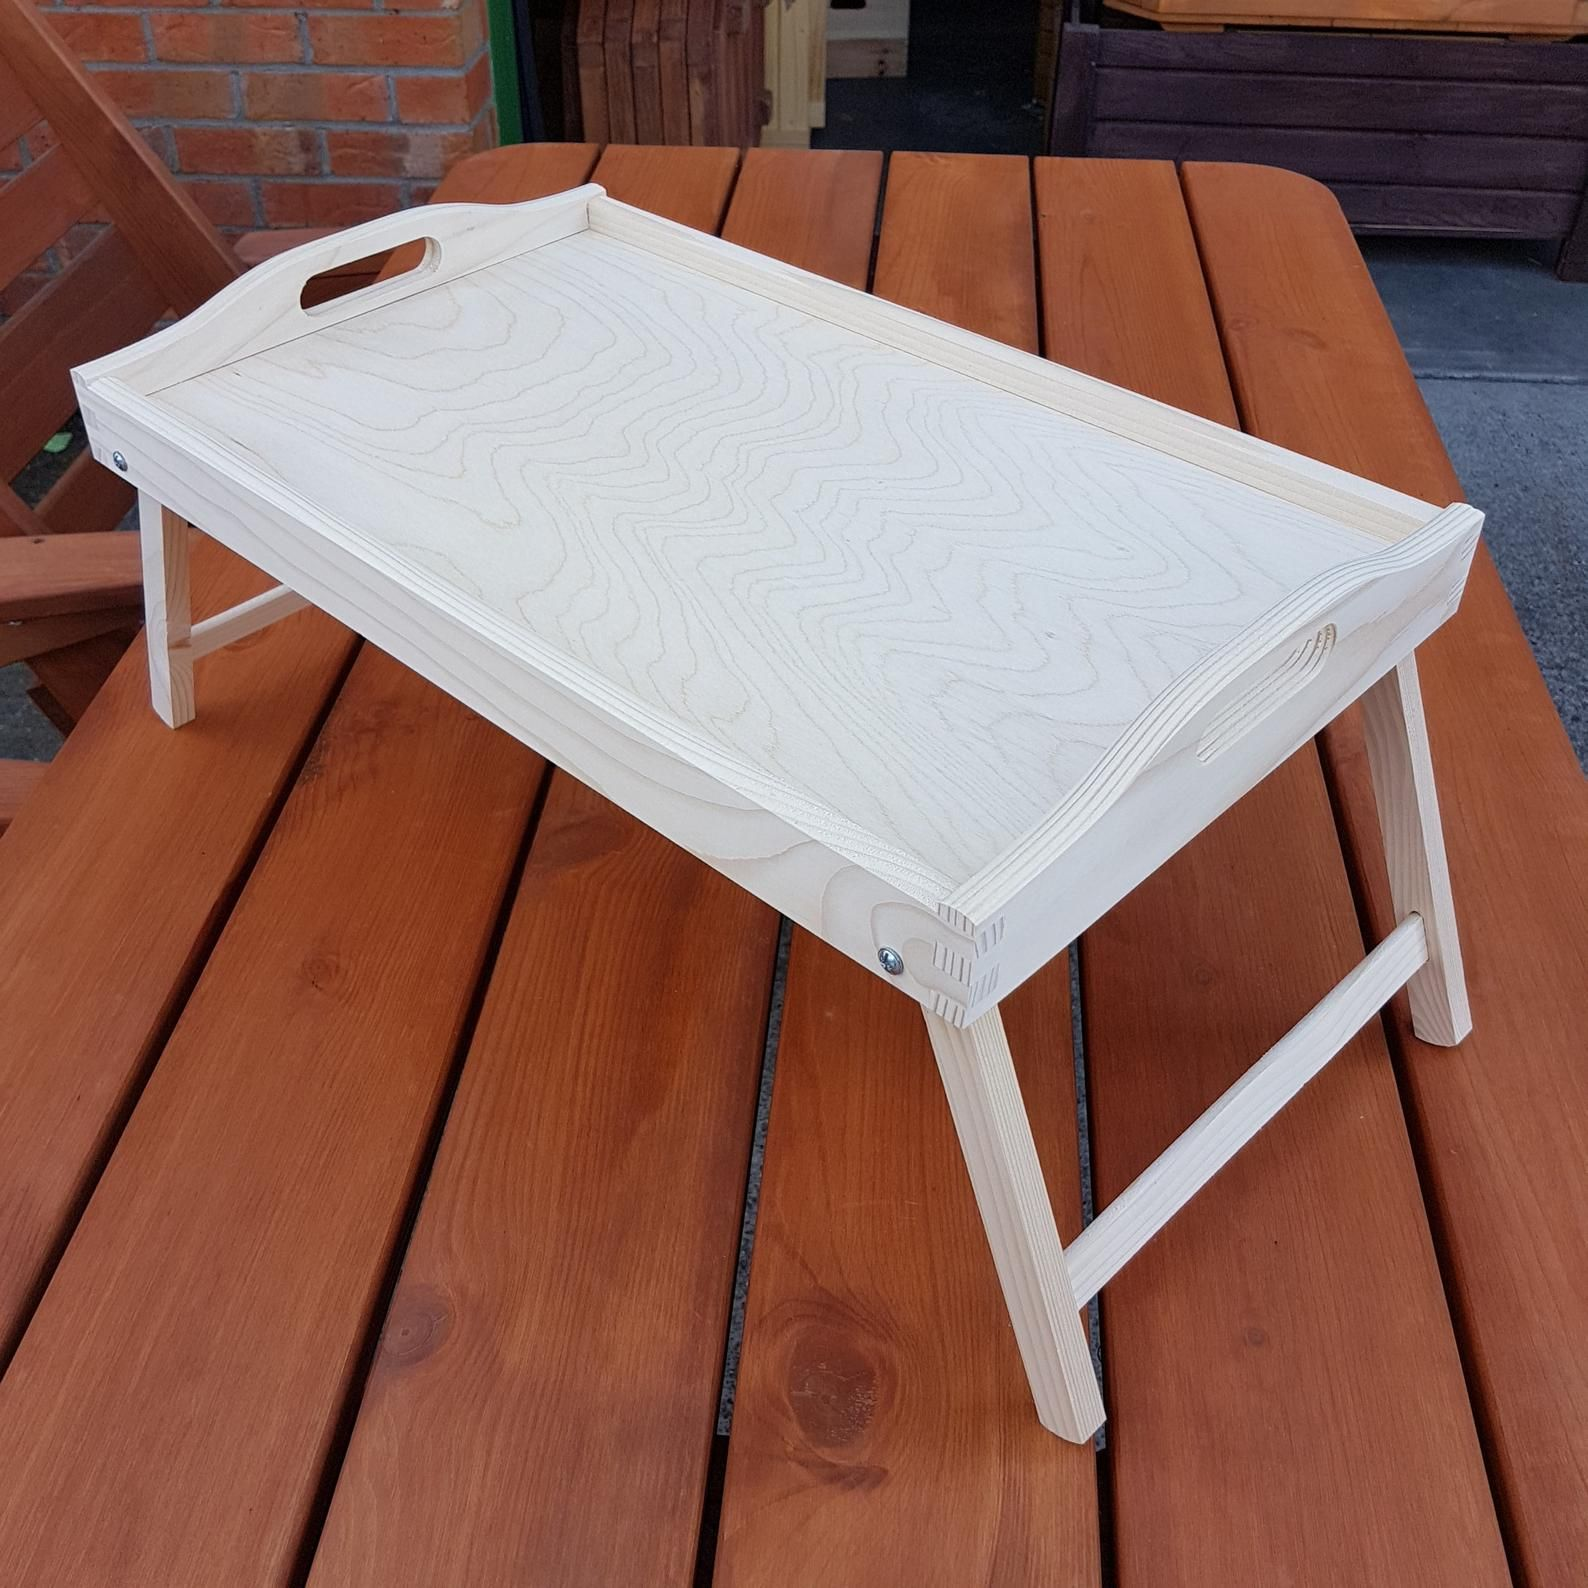 Wooden Breakfast Food Serving Lap Tray With Folding Legs For Bed For Decoupage Lap Tray Wooden Serving Trays Wooden Tray